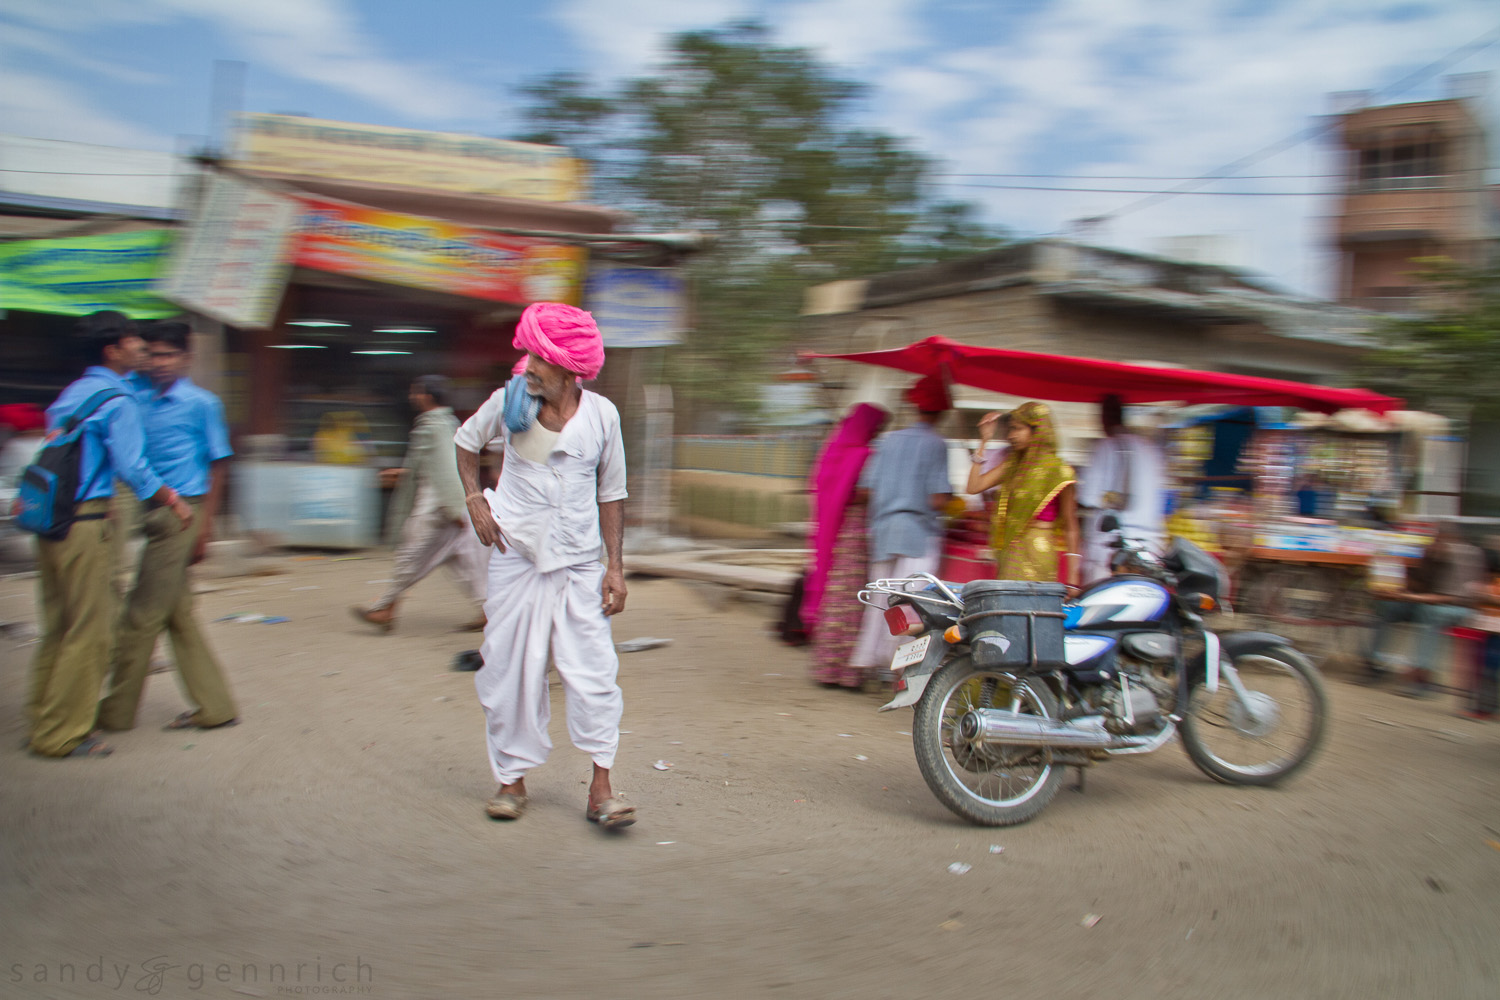 Man with Pink Turban - India in Motion - Rural Rajastan - India